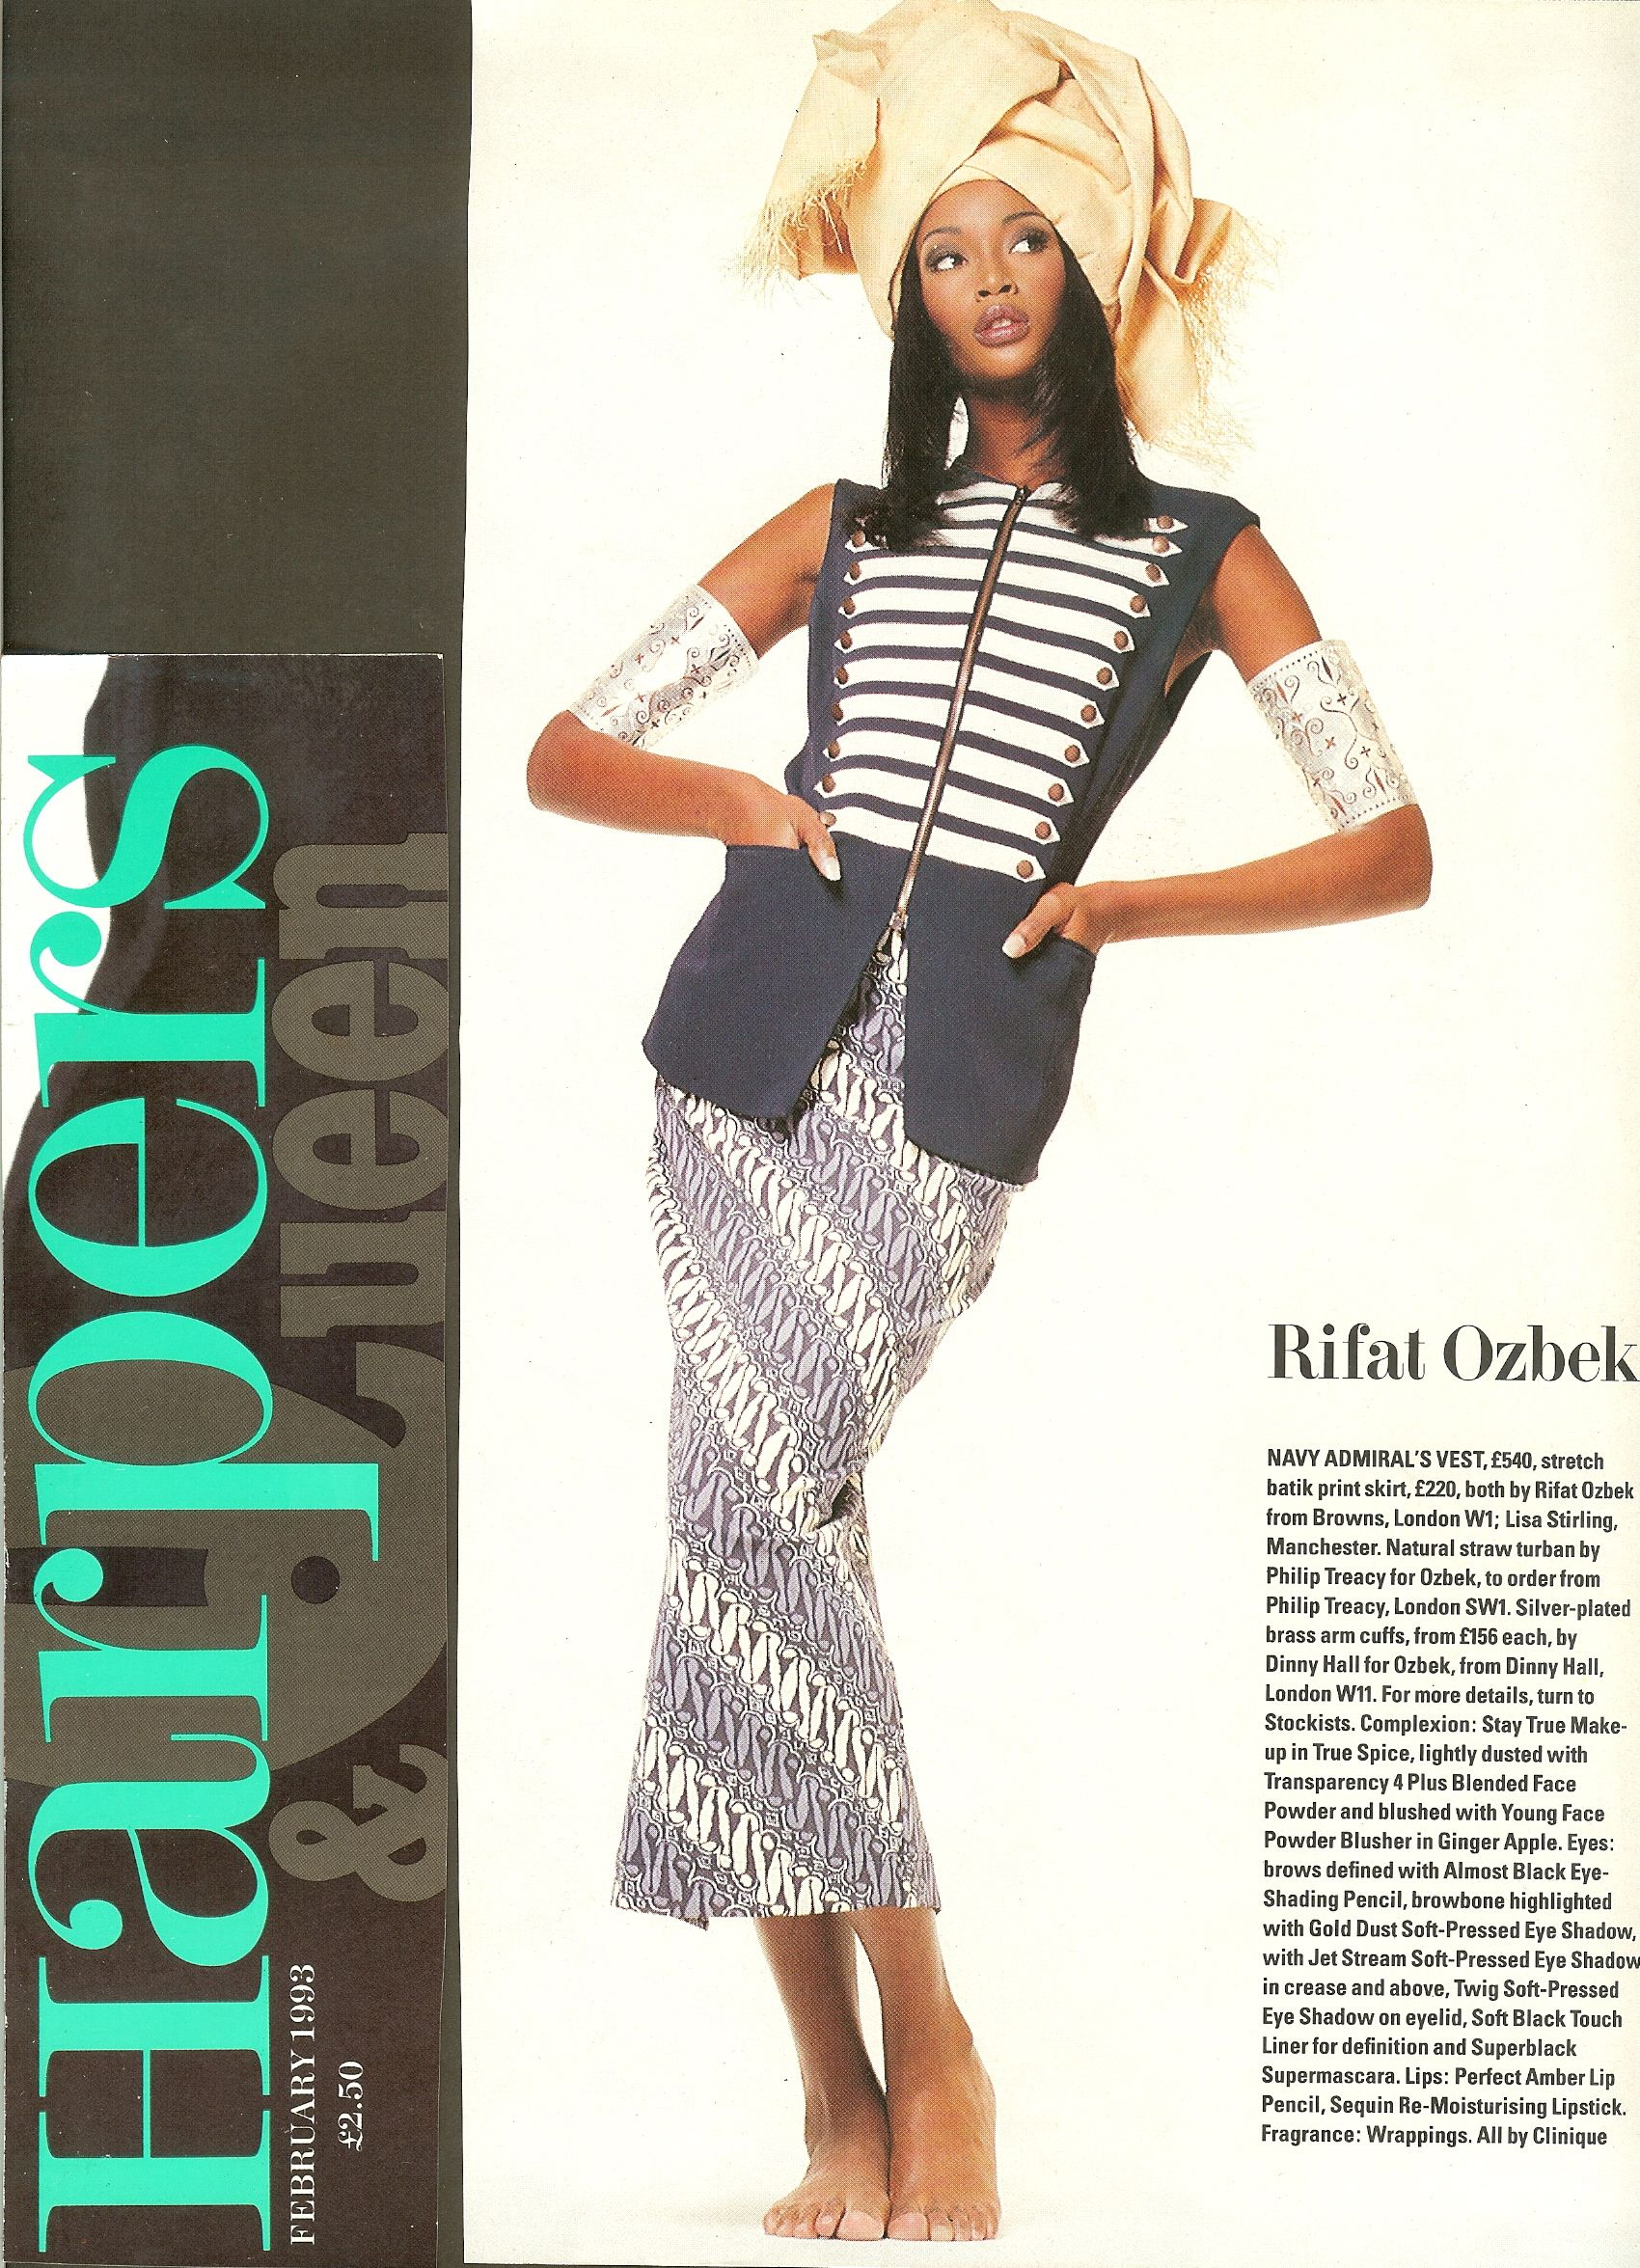 Dinny Hall for Rifat Ozbek Silver Plated Brass Arm Cuffs in Harpers & Queen  Magazine, Modeled by Naomi Campbell.